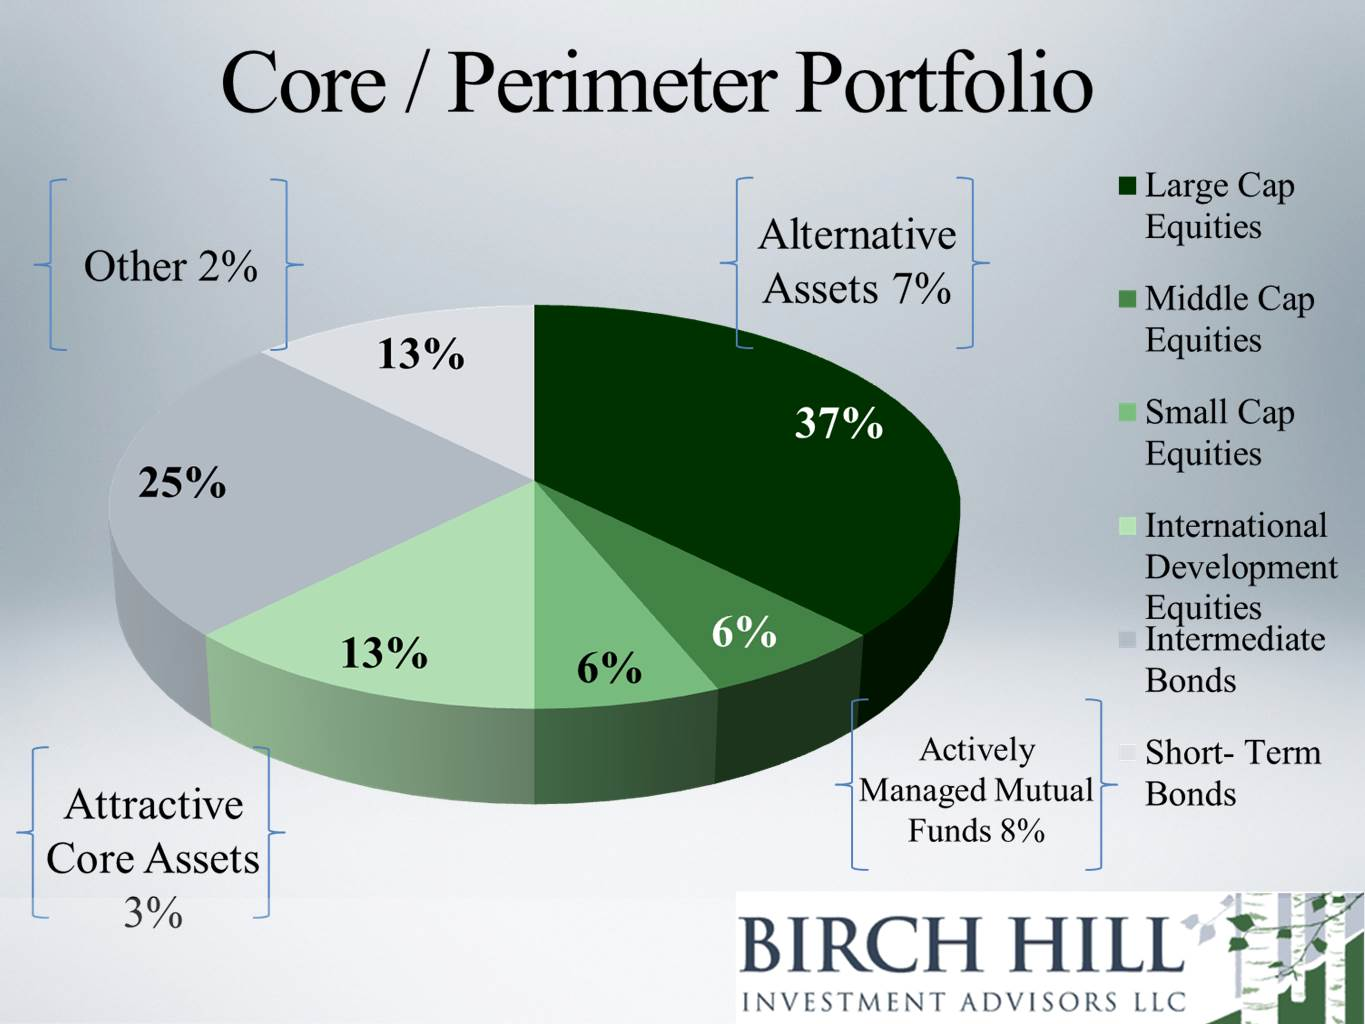 Serious professional powerpoint design for gary mikula by dorota powerpoint design by dorotary for core investment strategys super pie chart design nvjuhfo Image collections